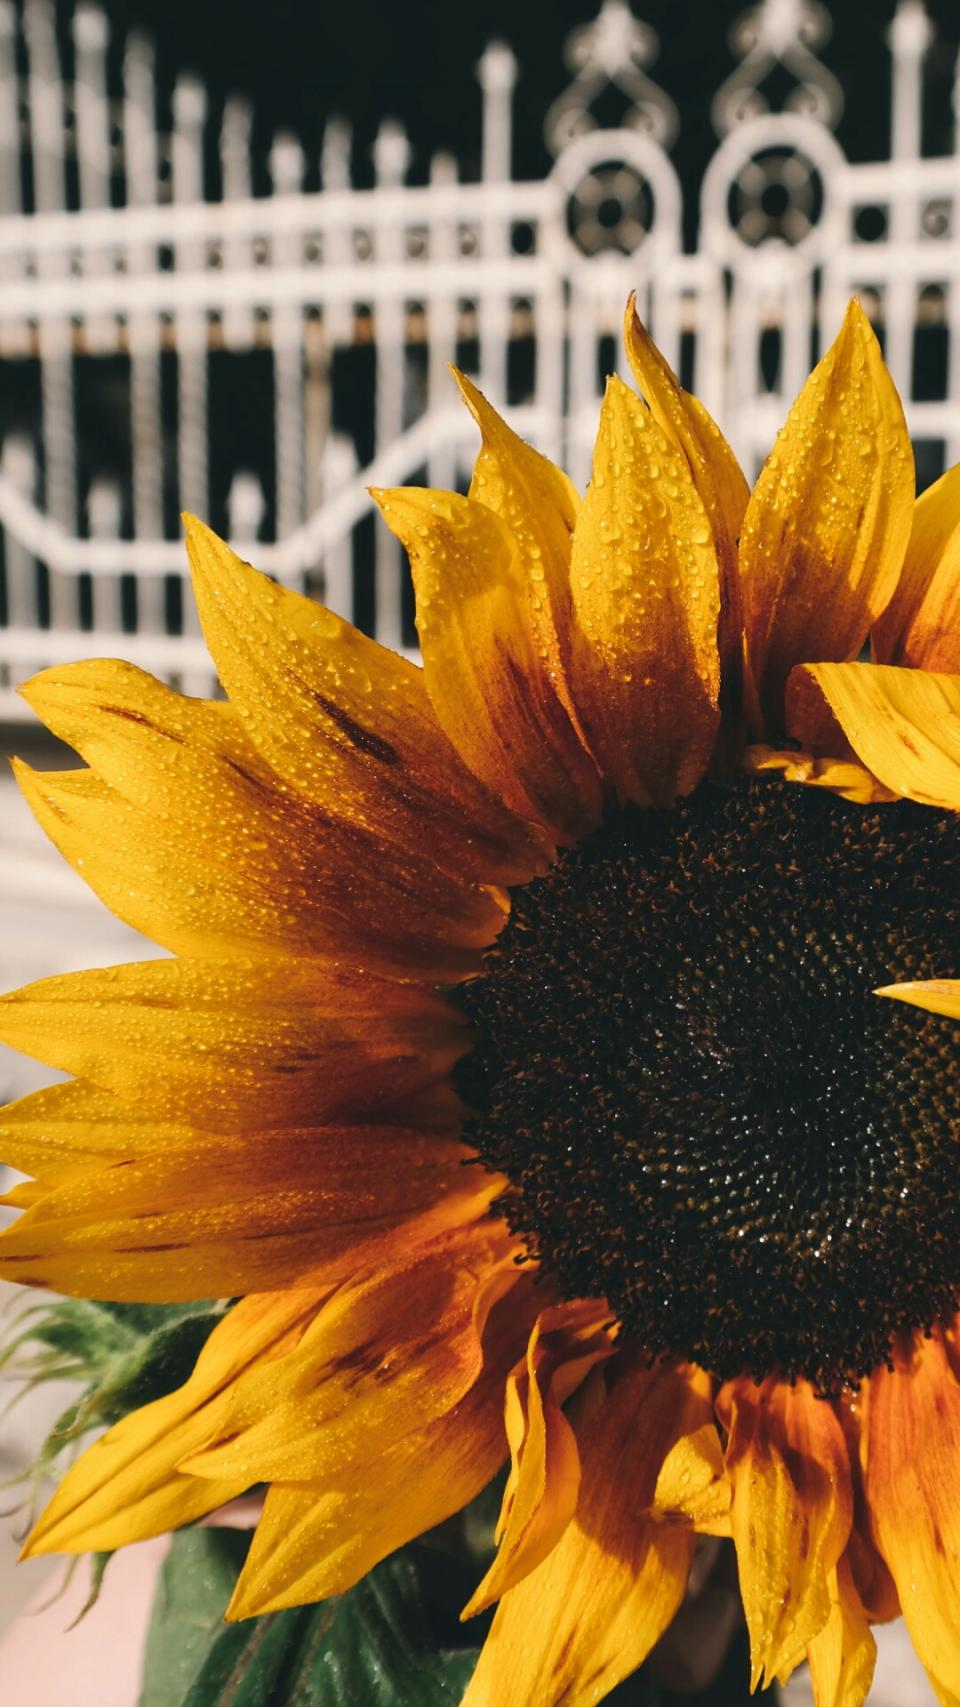 sunflower, petals, plant, nature, yellow, seeds, leaves, raindrops, outside